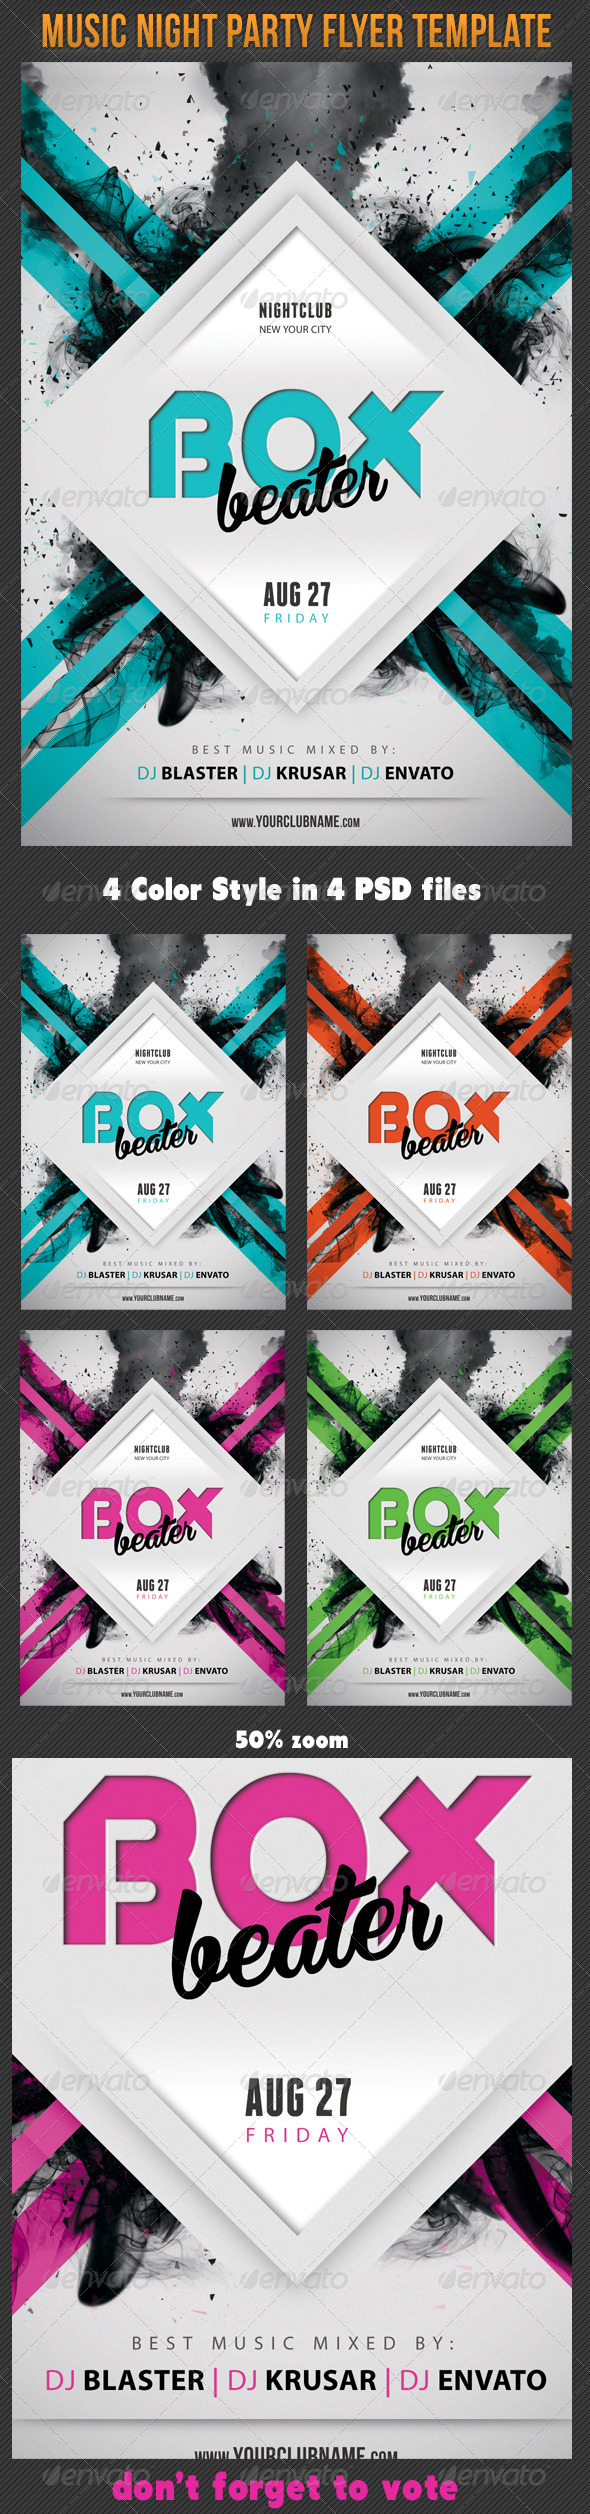 GraphicRiver Music Night Party Flyer Template 10 7511319